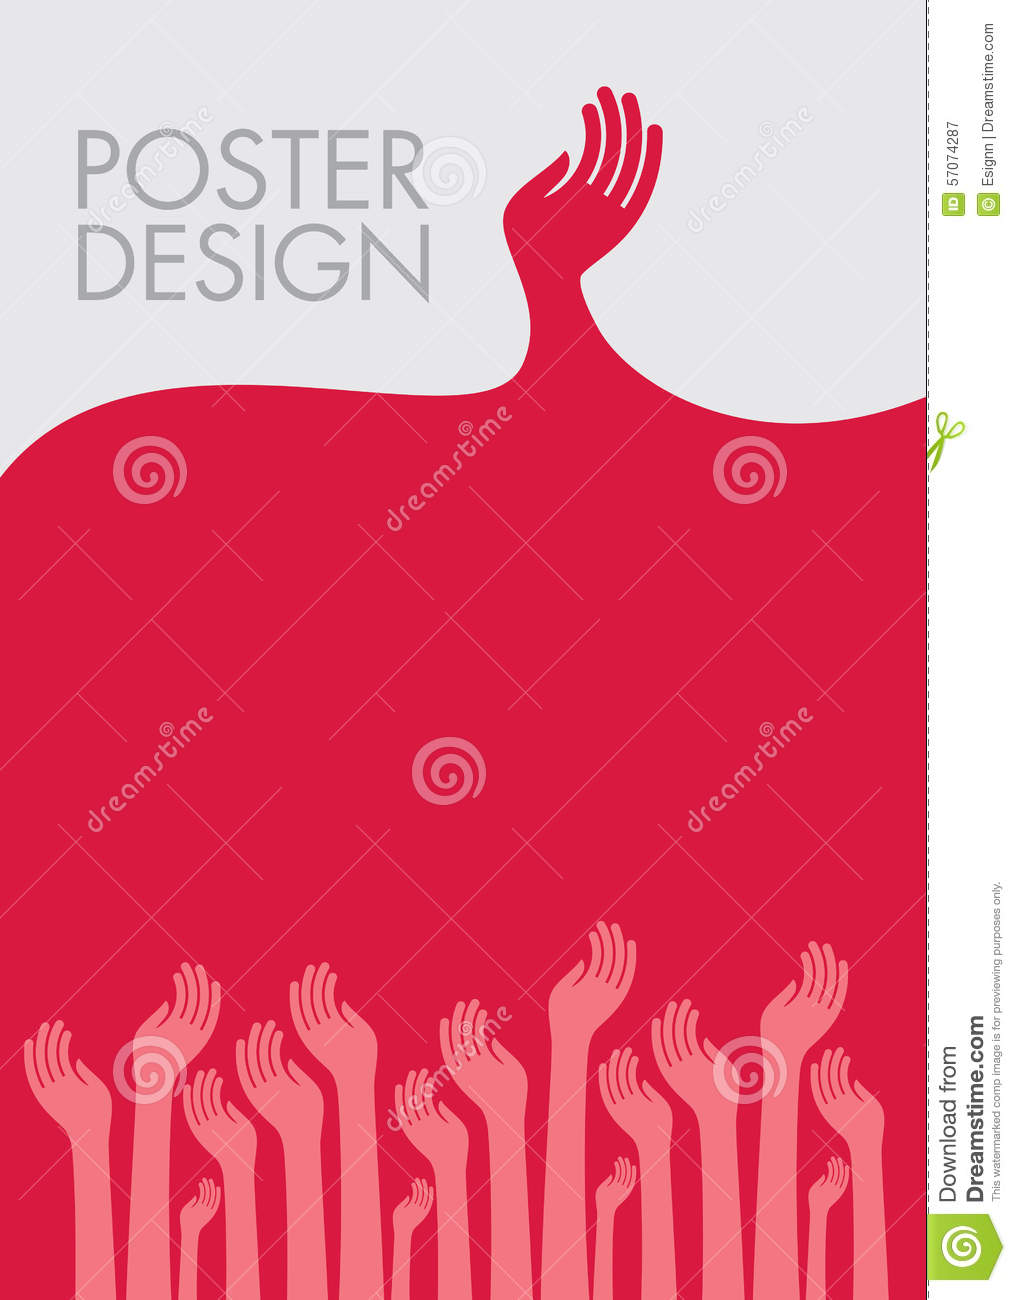 Poster design for youth - Design Illustration Poster Vector Youth